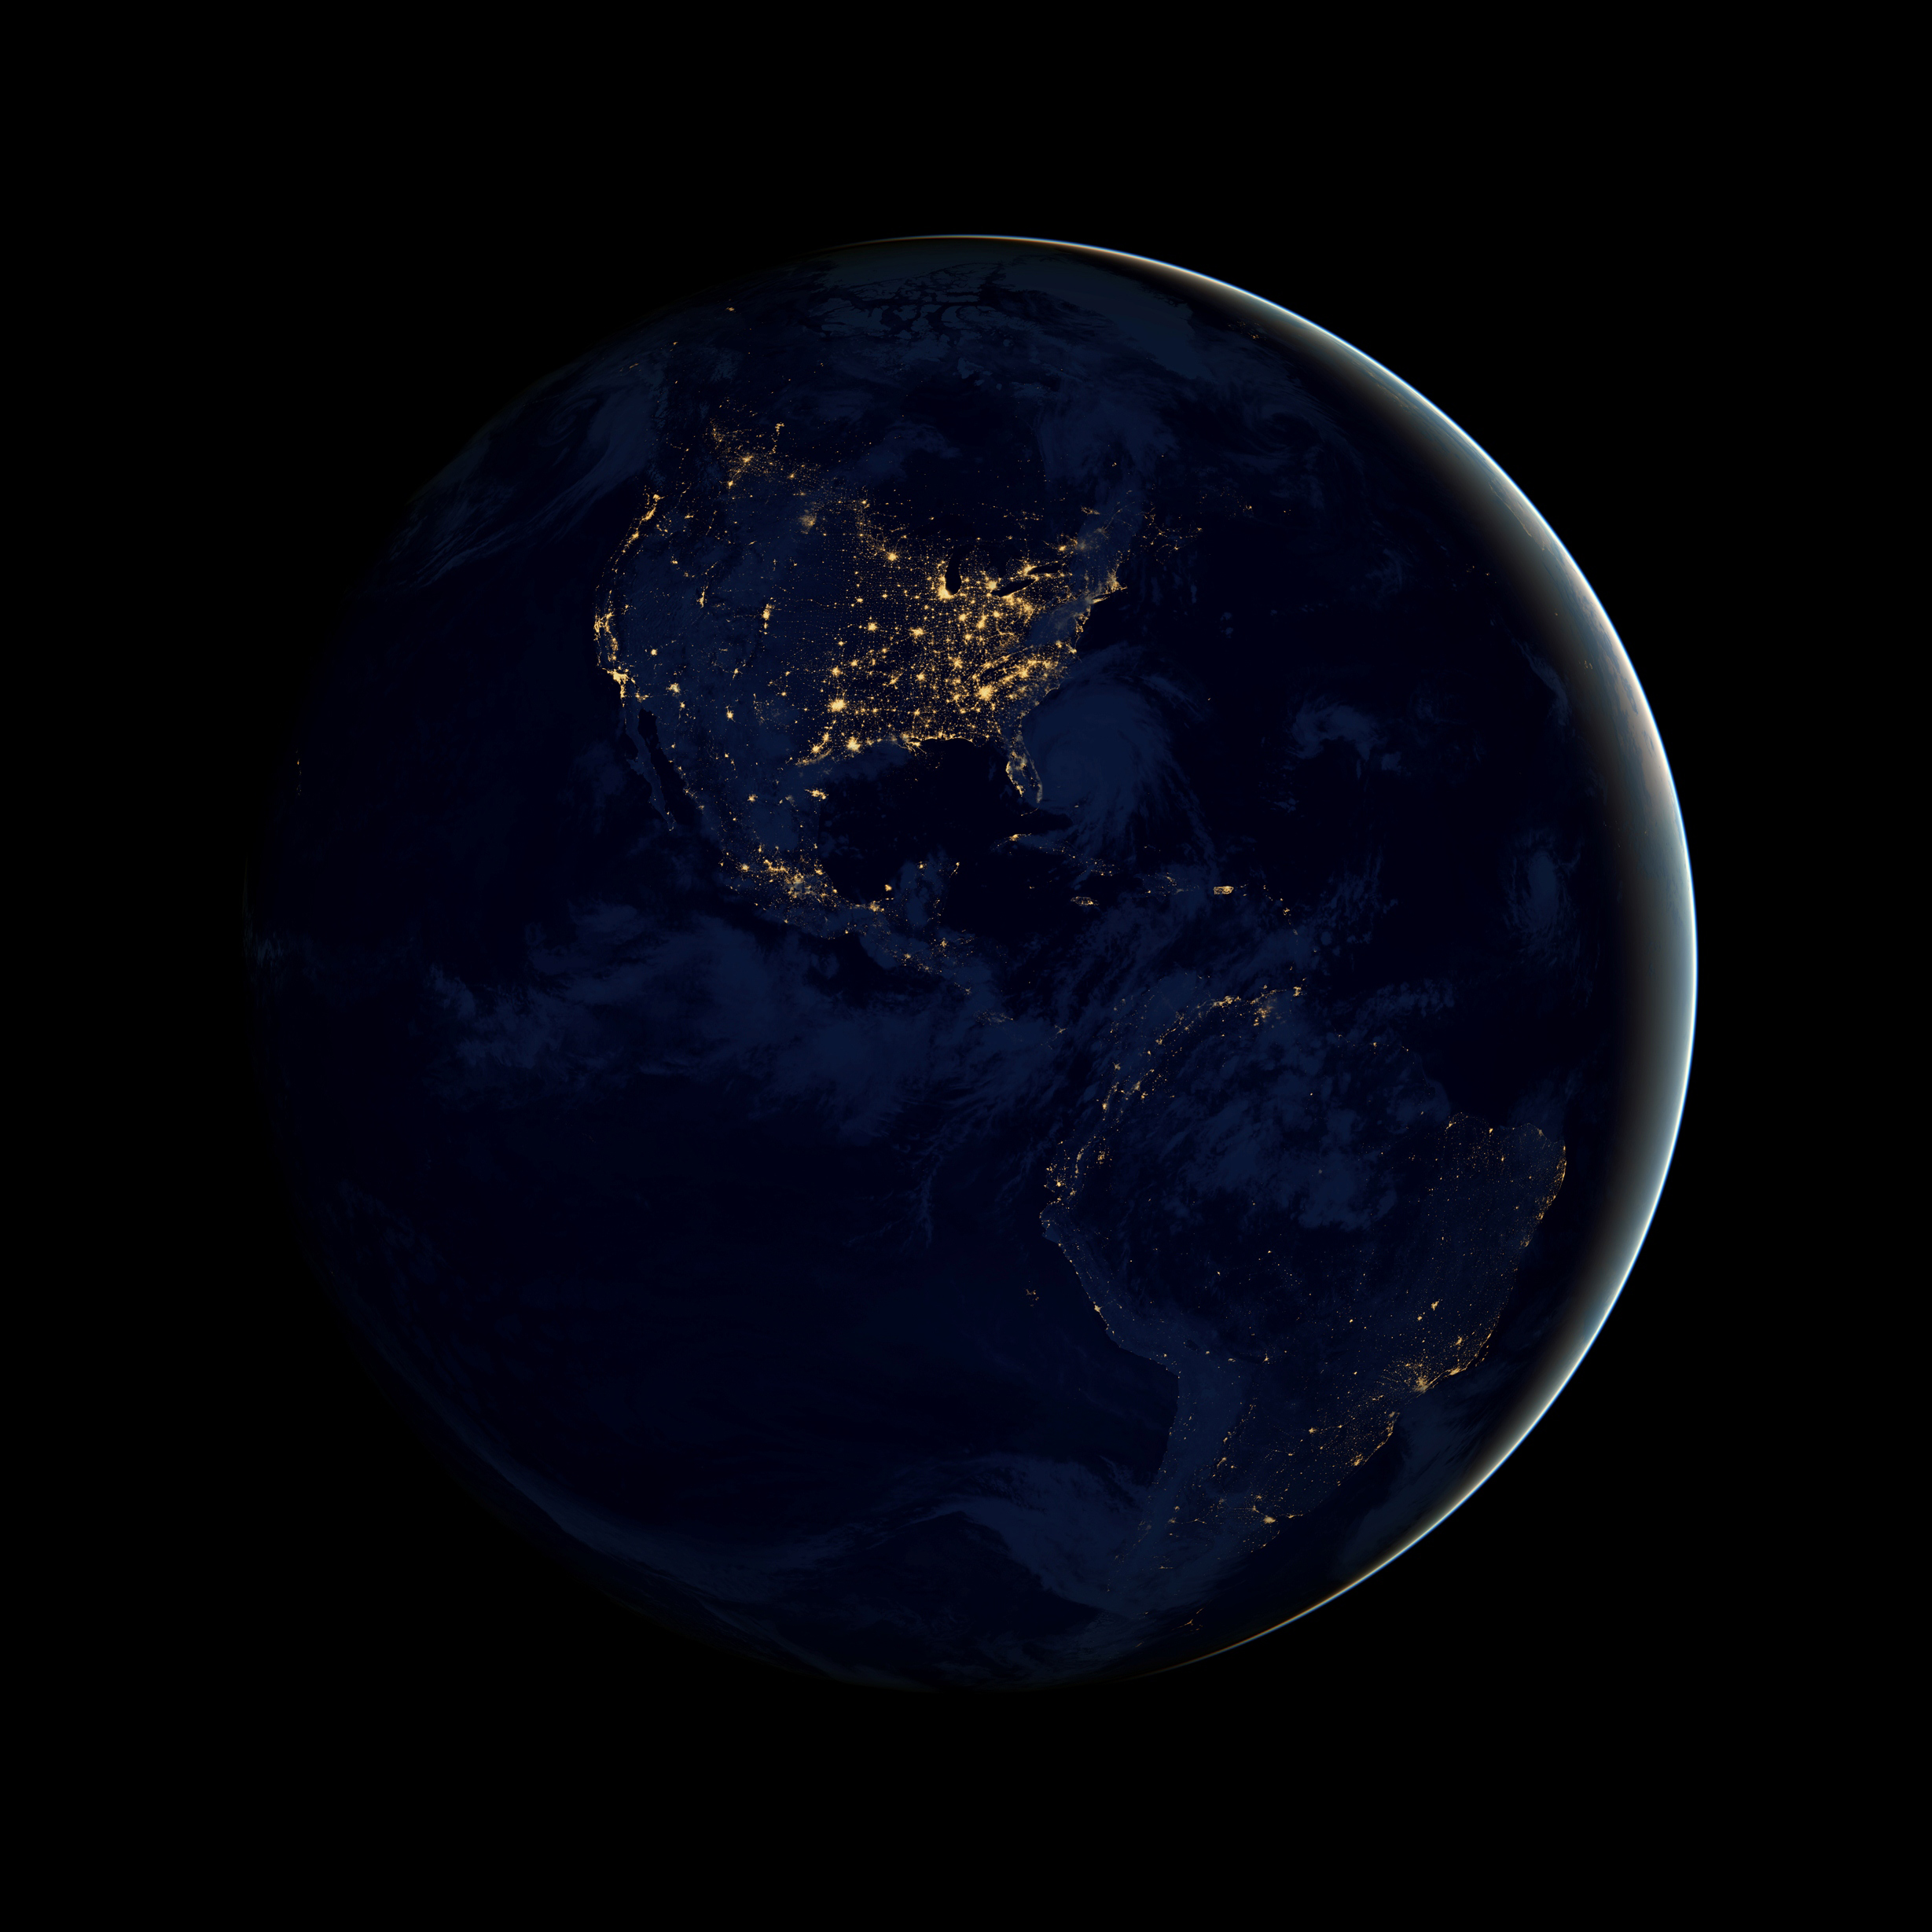 40904ed2f07 Midnight Showing  Stunning and Scientifically Vital Satellite Views of  Earth at Night